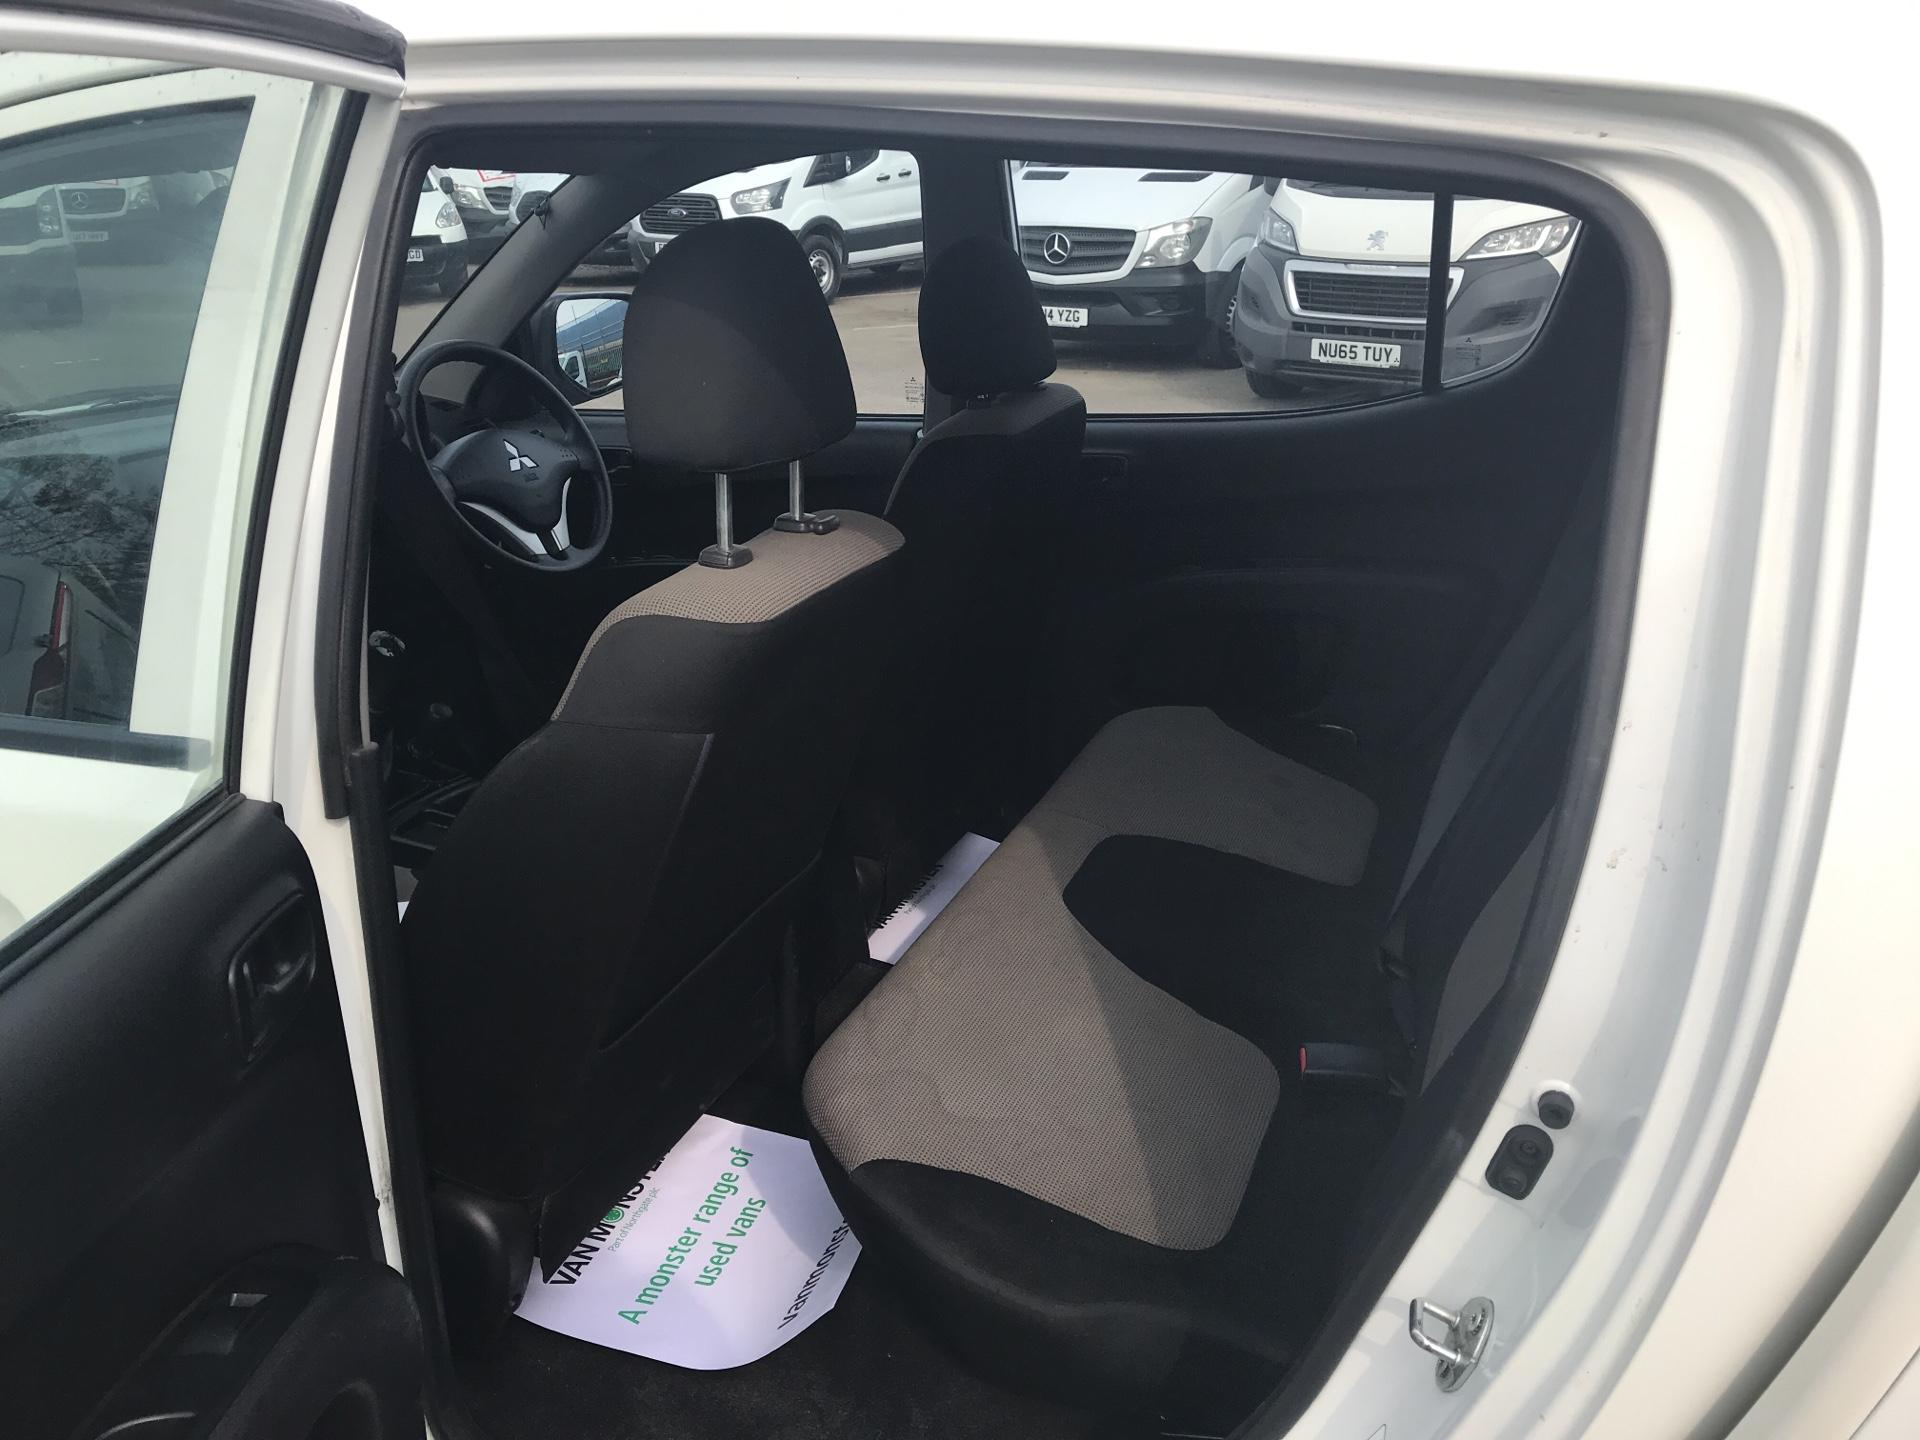 2015 Mitsubishi L200 Double Cab Di-D 4Life 4Wd 134Bhp *VALUE RANGE VEHICLE CONDITION REFLECTED IN PRICE* (DY65XLH) Image 15